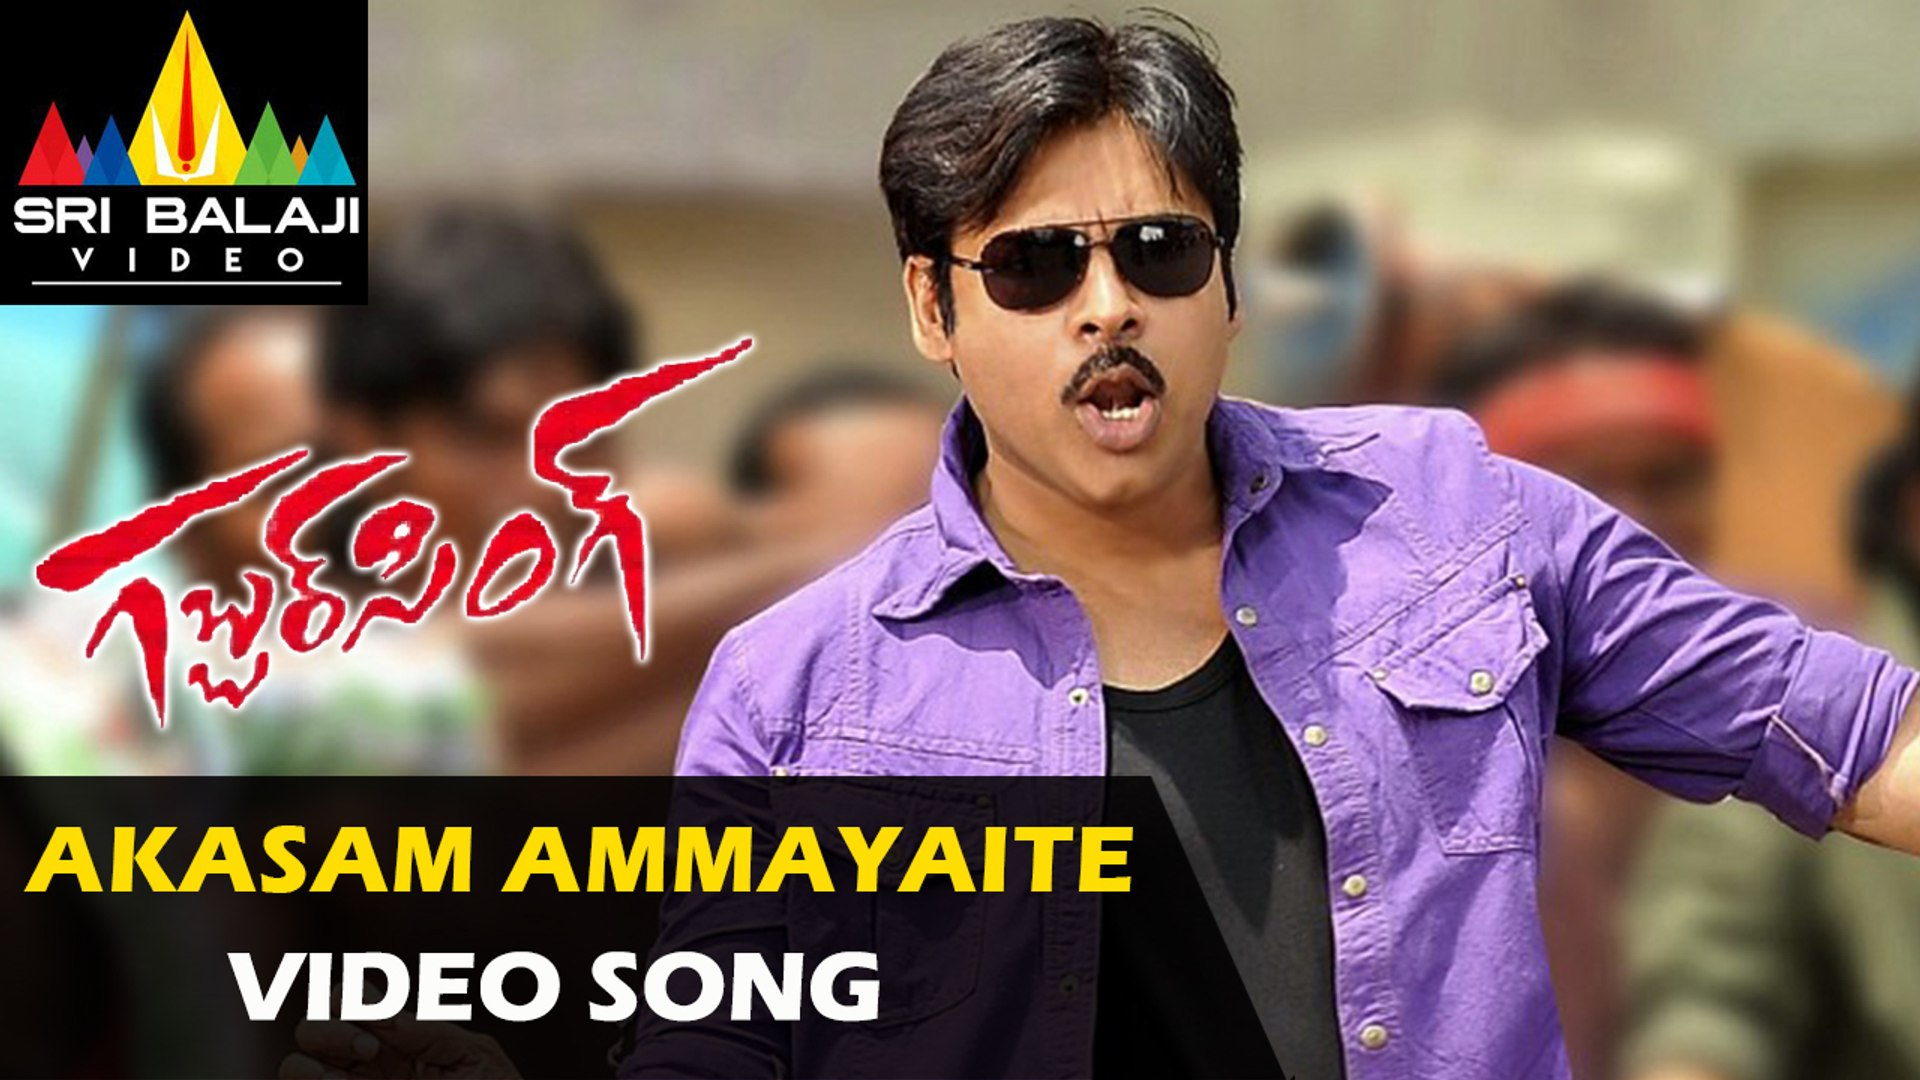 akasam ammayaithe mp4 video song